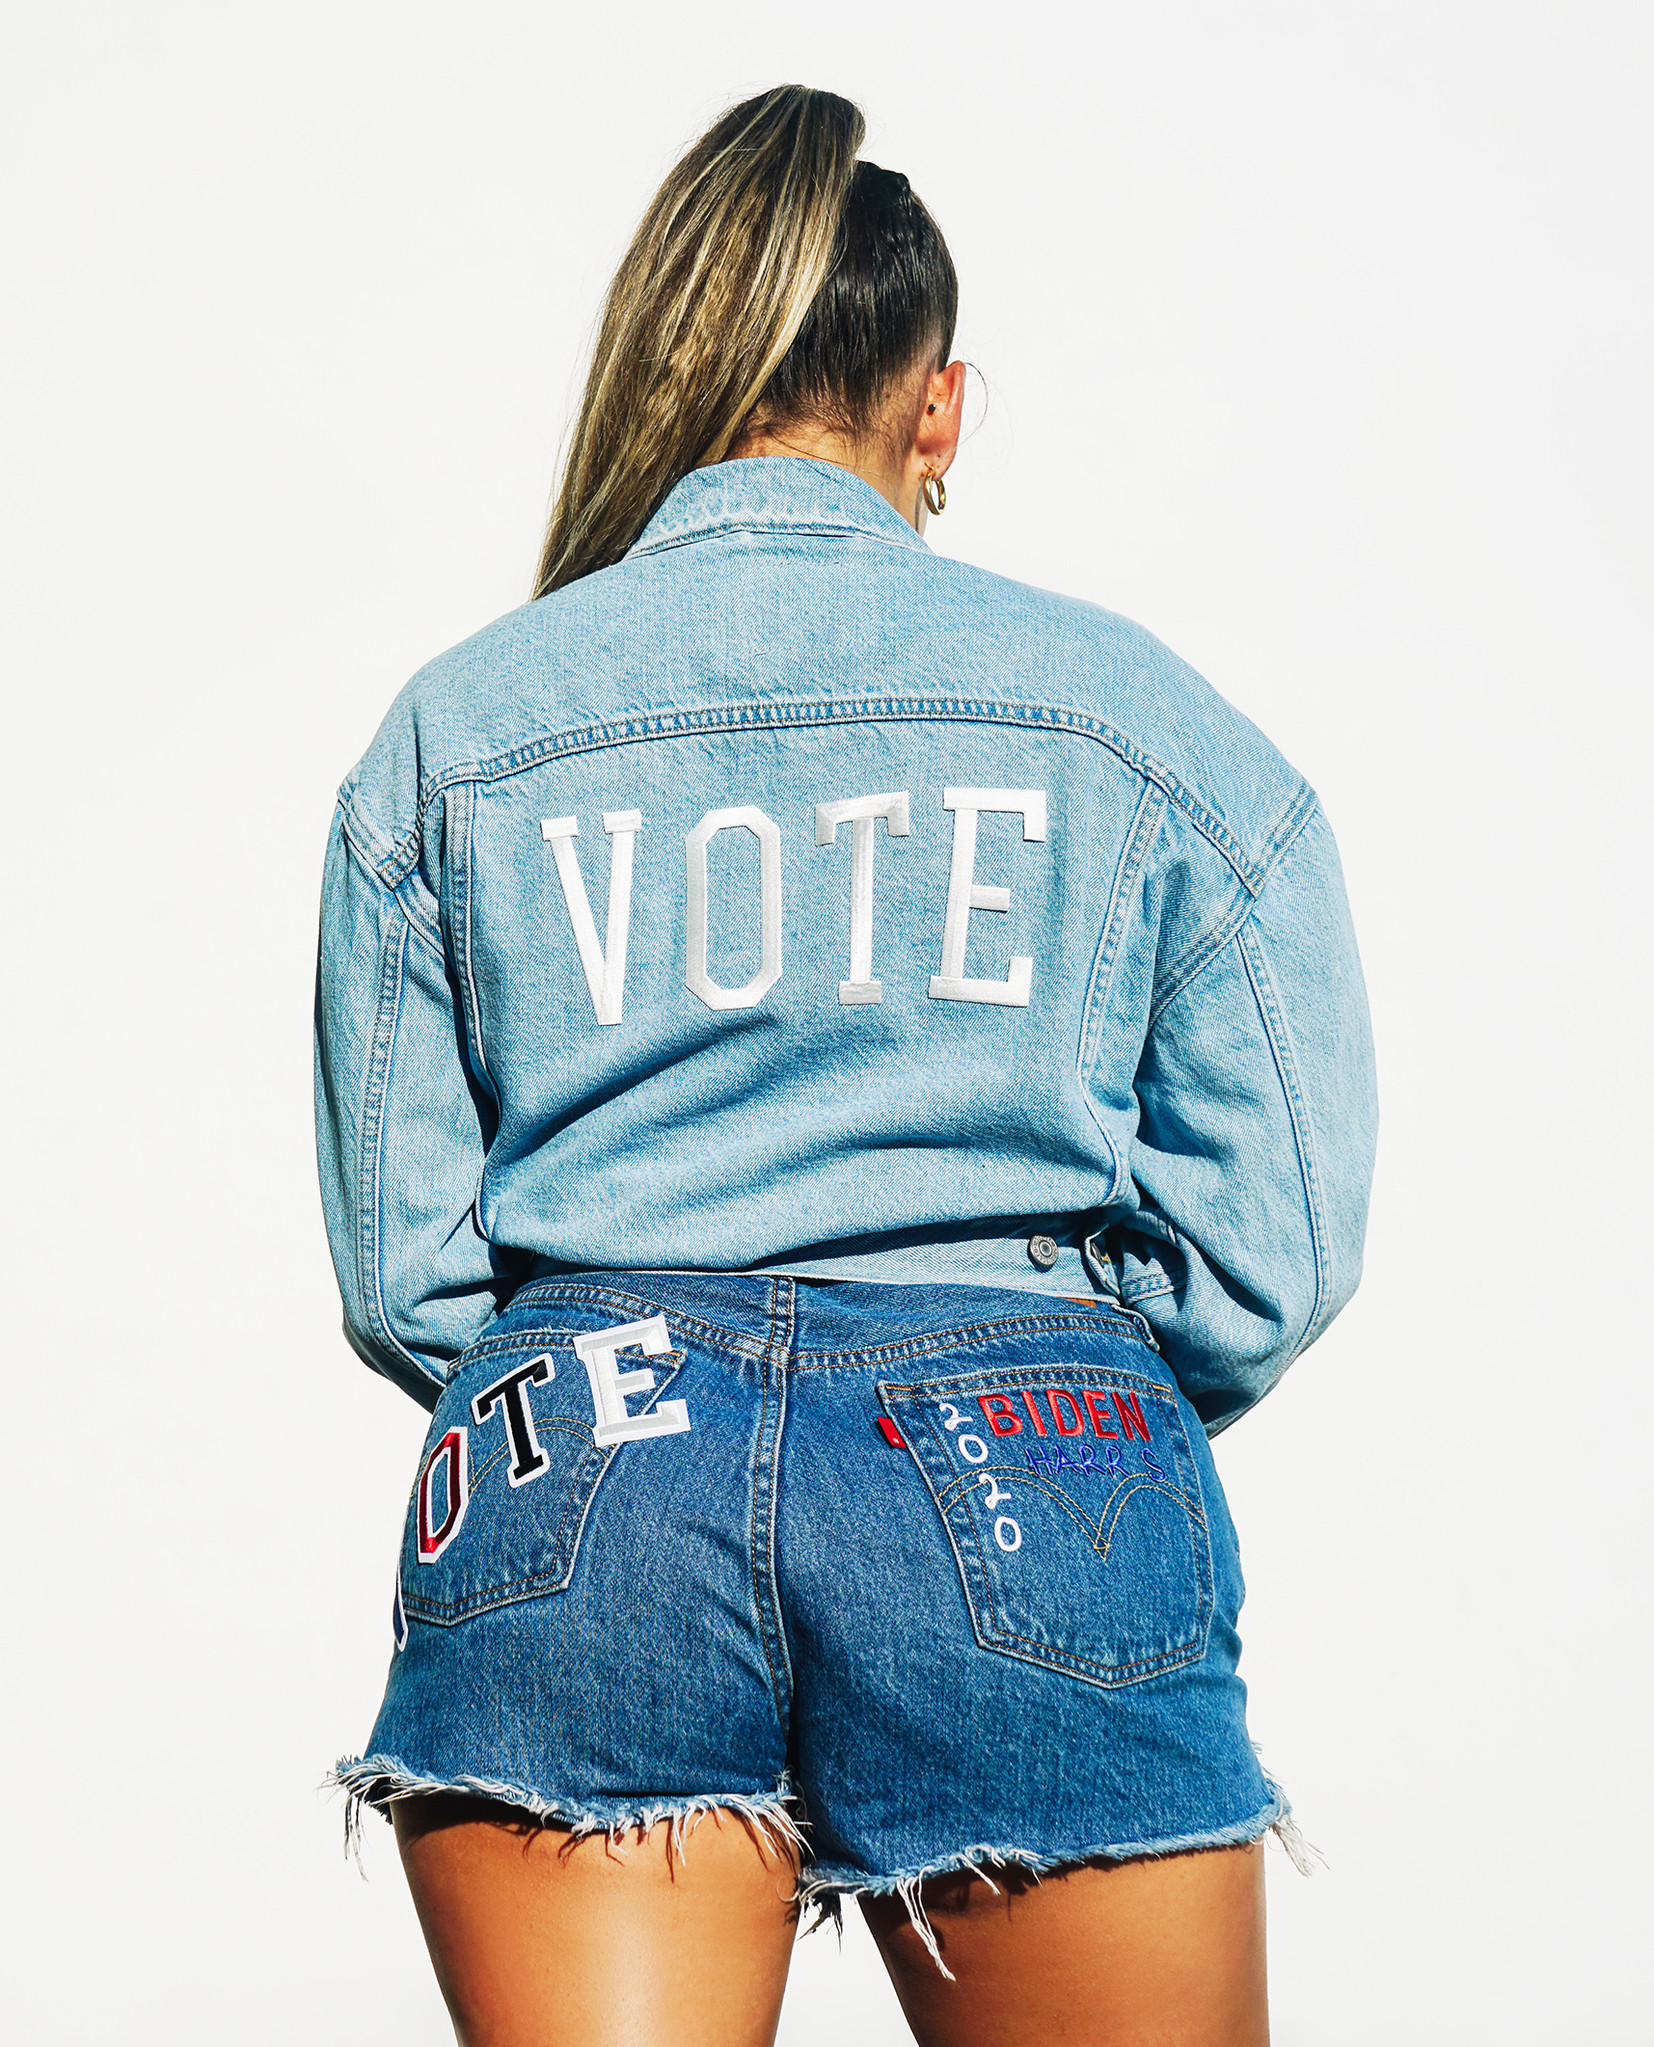 LEVI'S VOTE EX BF TRUCKER FOR REAL-2